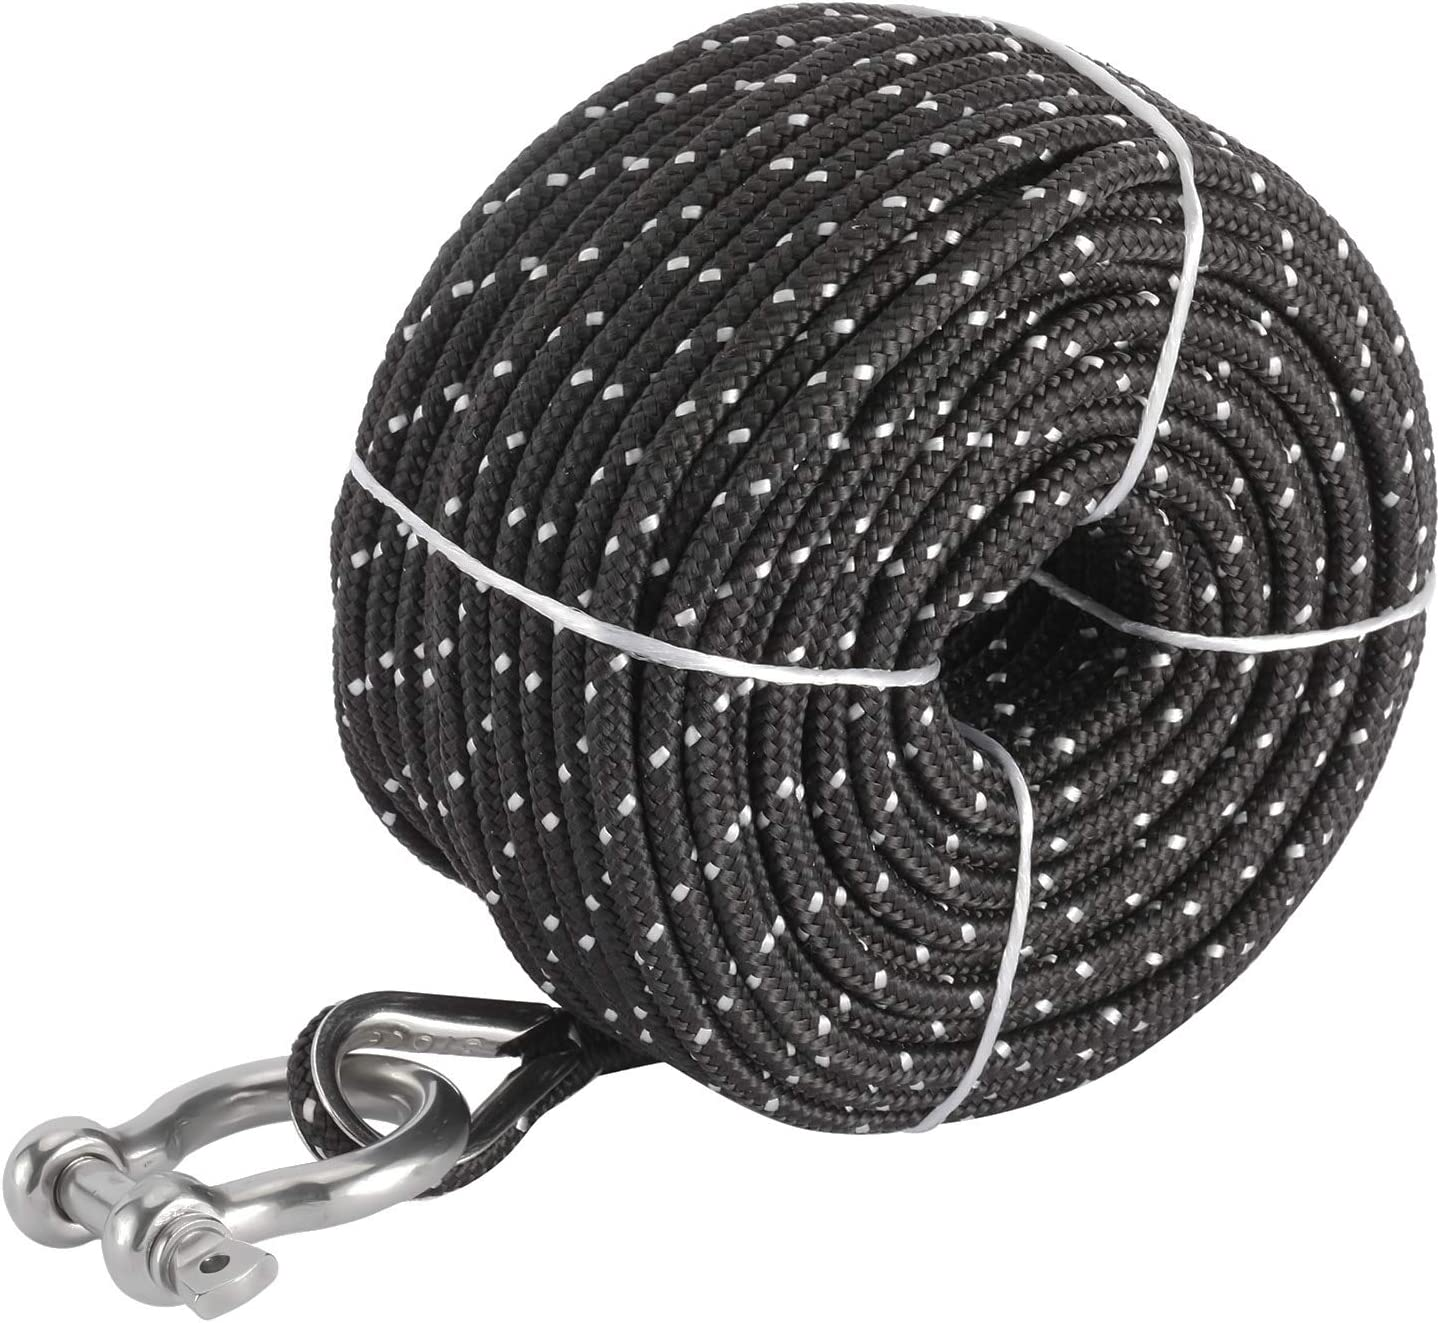 NovelBee 3//16 Inch X 100 Feet Double Braid Nylon Anchor Line with Stainless Steel Thimble and Hook